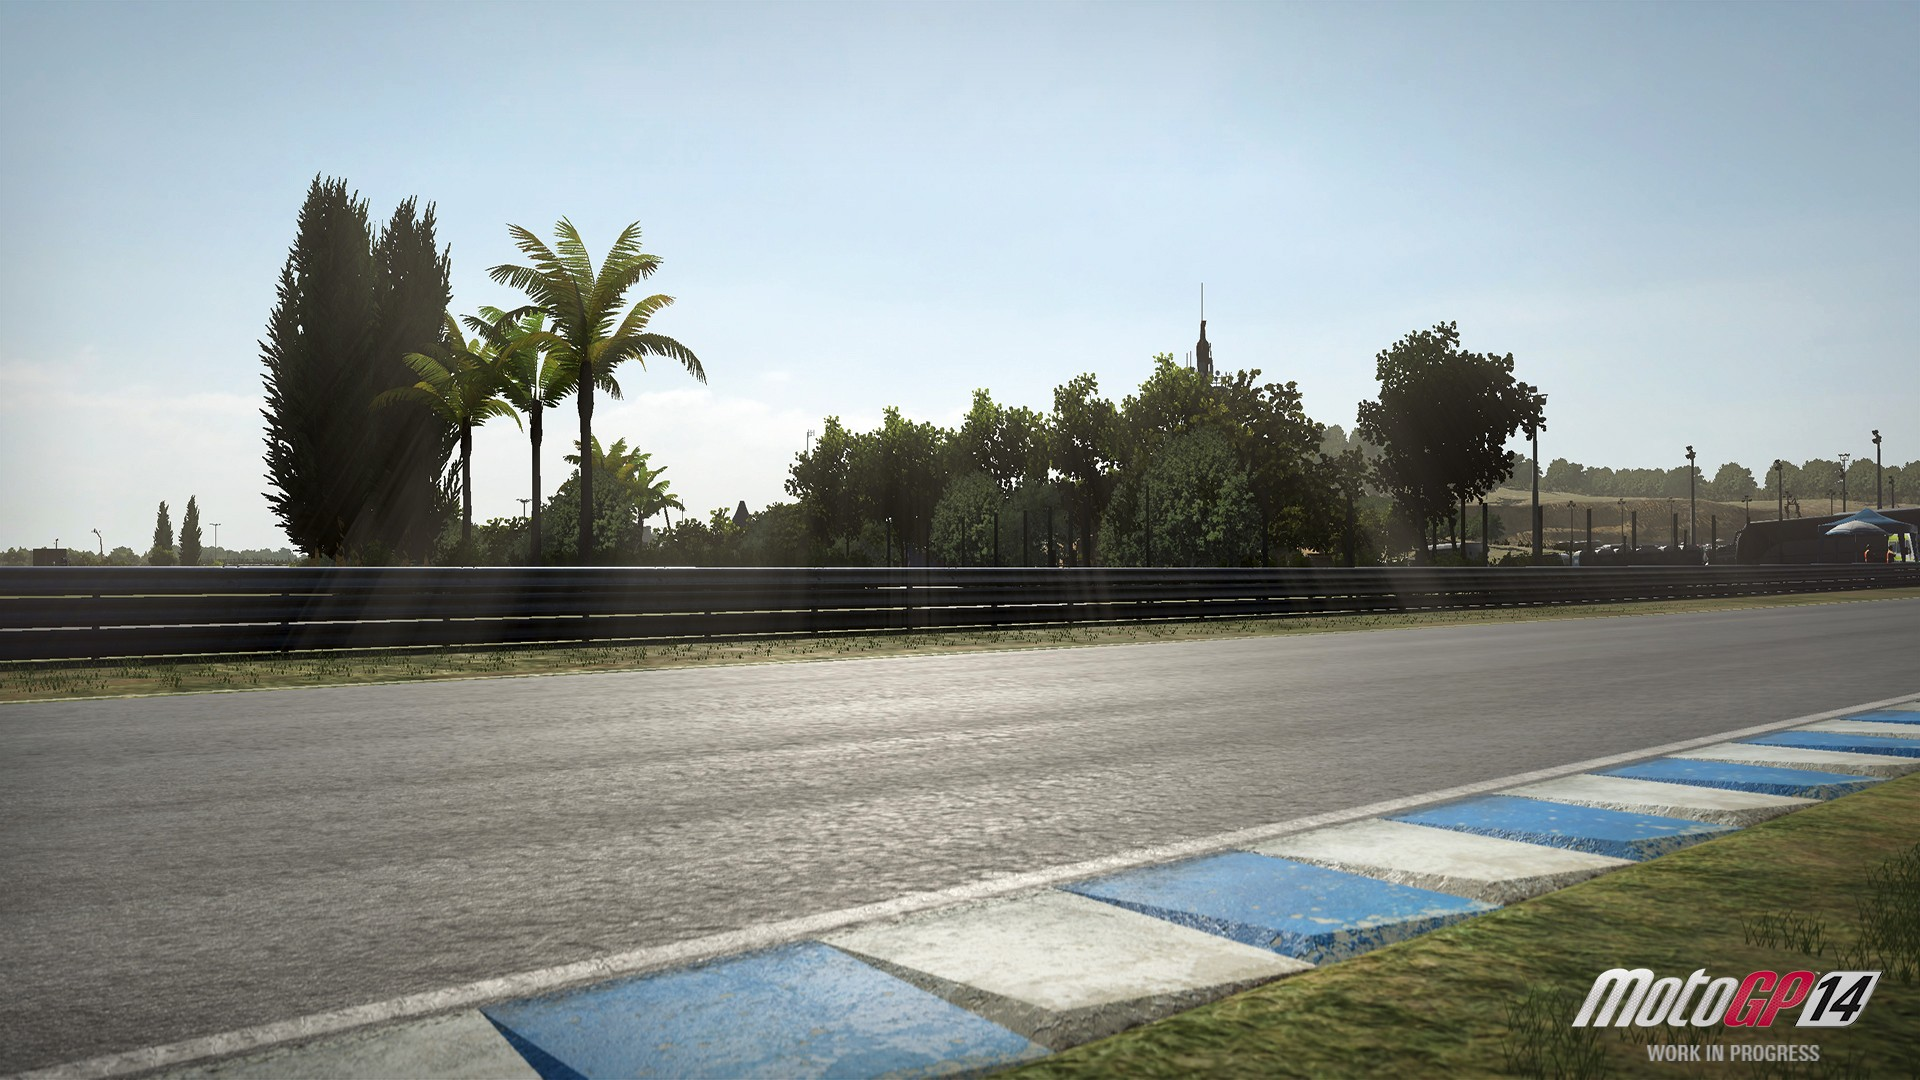 """First MotoGP 14 Playstation 4 Screenshots Released, """"Graphics/Visuals More Detailed Than Ever"""""""